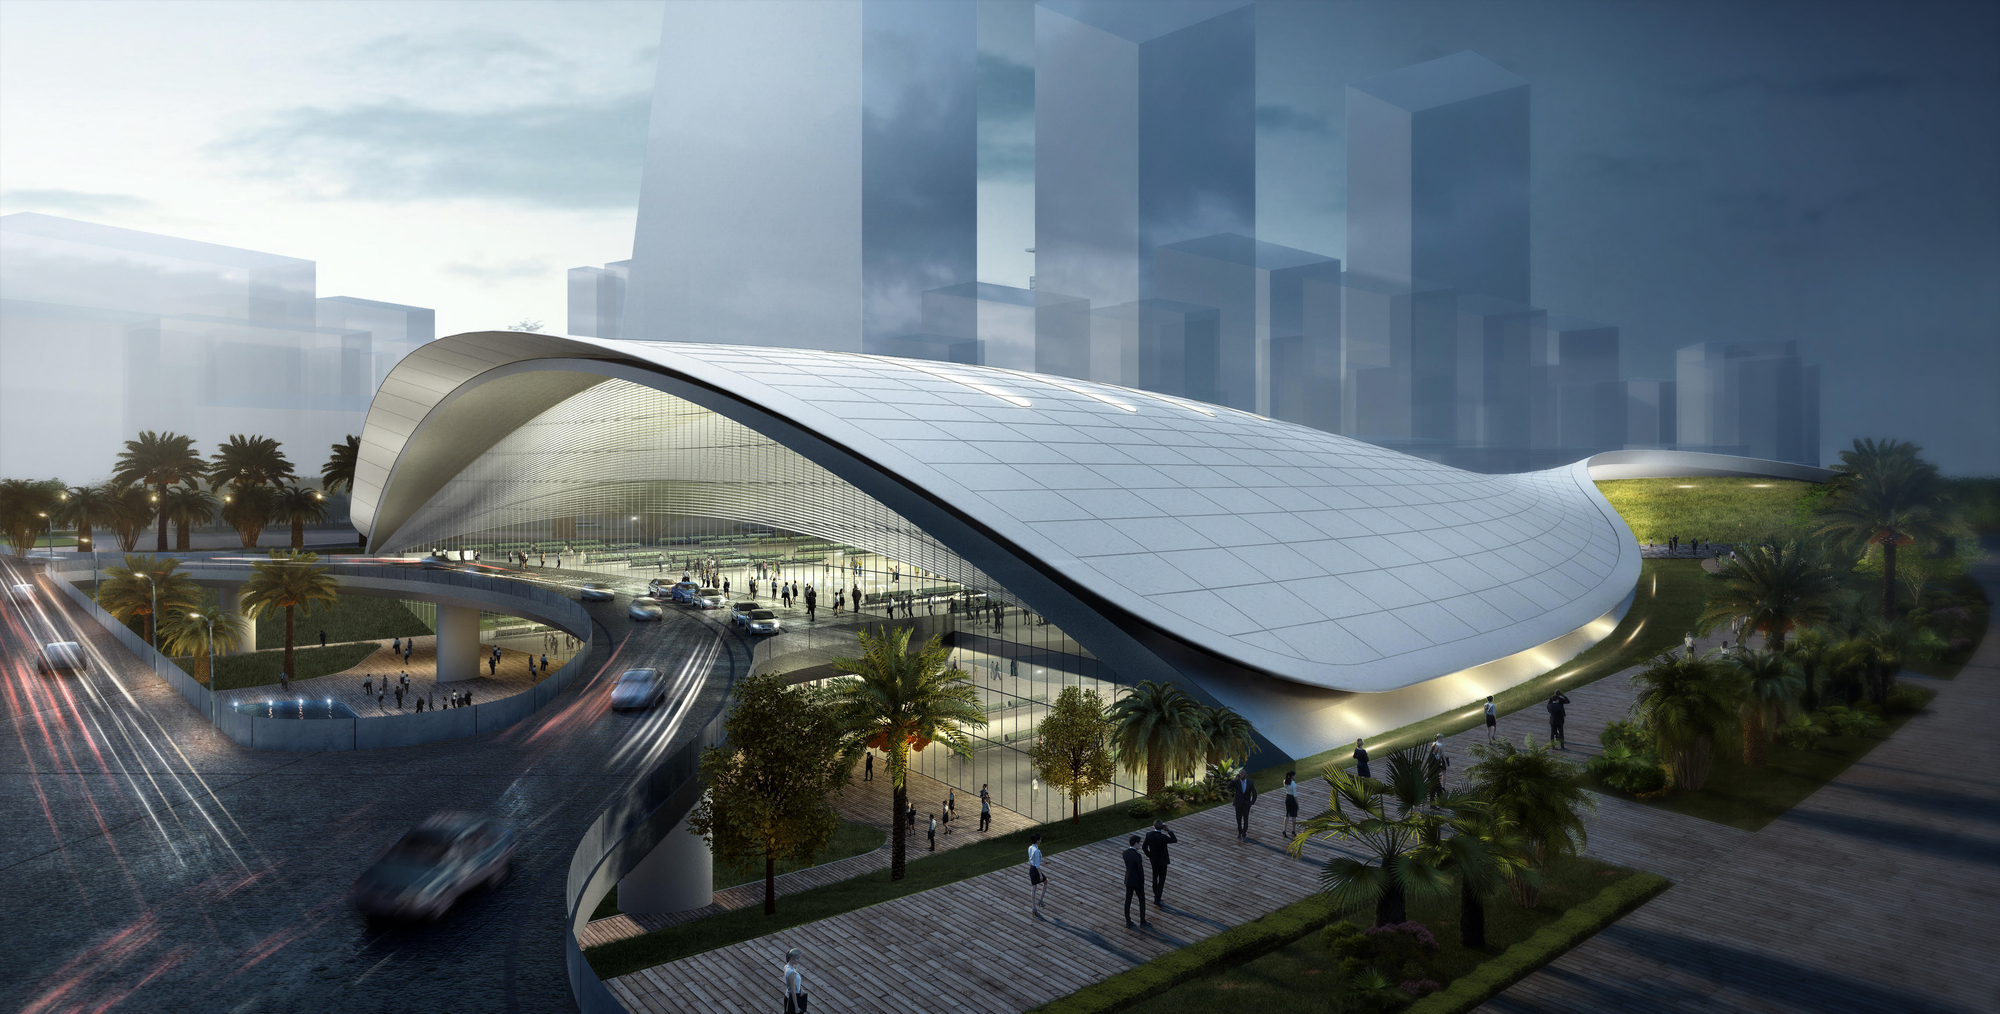 station design on high speed railway Zaha hadid architects has completed the first section of a new high-speed train station on the  phase of high-speed rail station  design enlarges the.